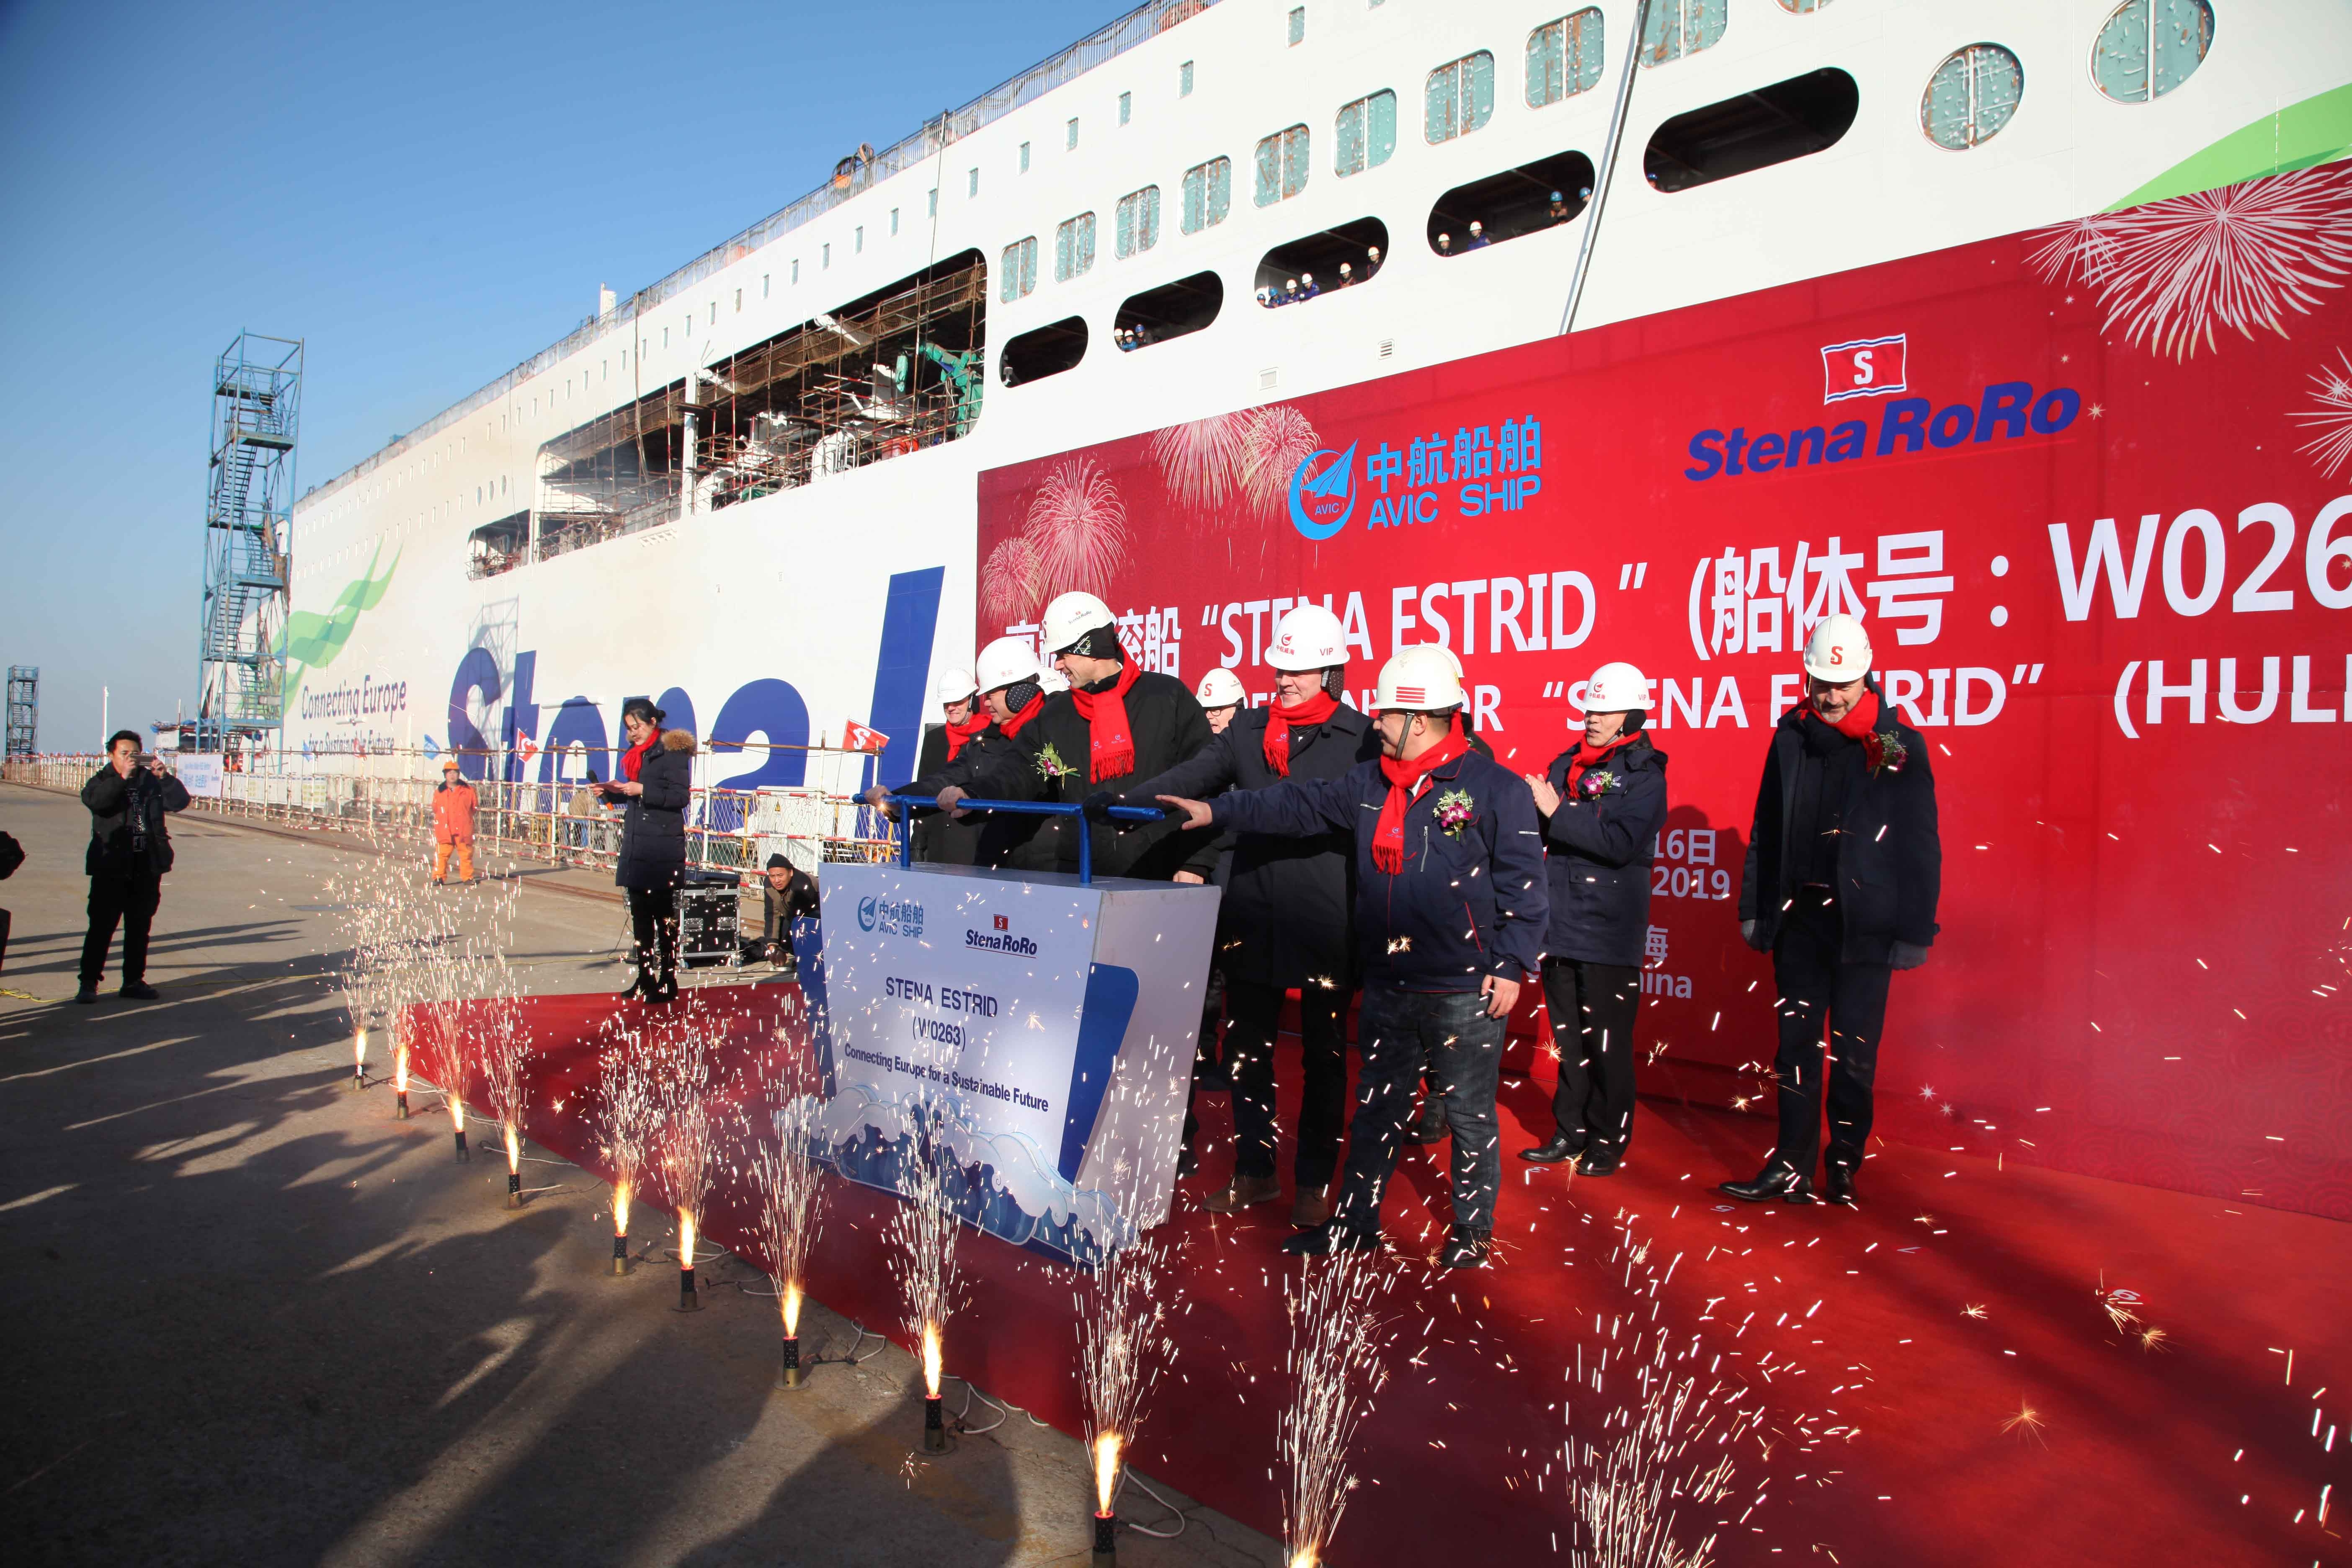 The first E-Flexer, named Stena Estrid, just prior to launch on January 16th 2019. Stena RoRo.